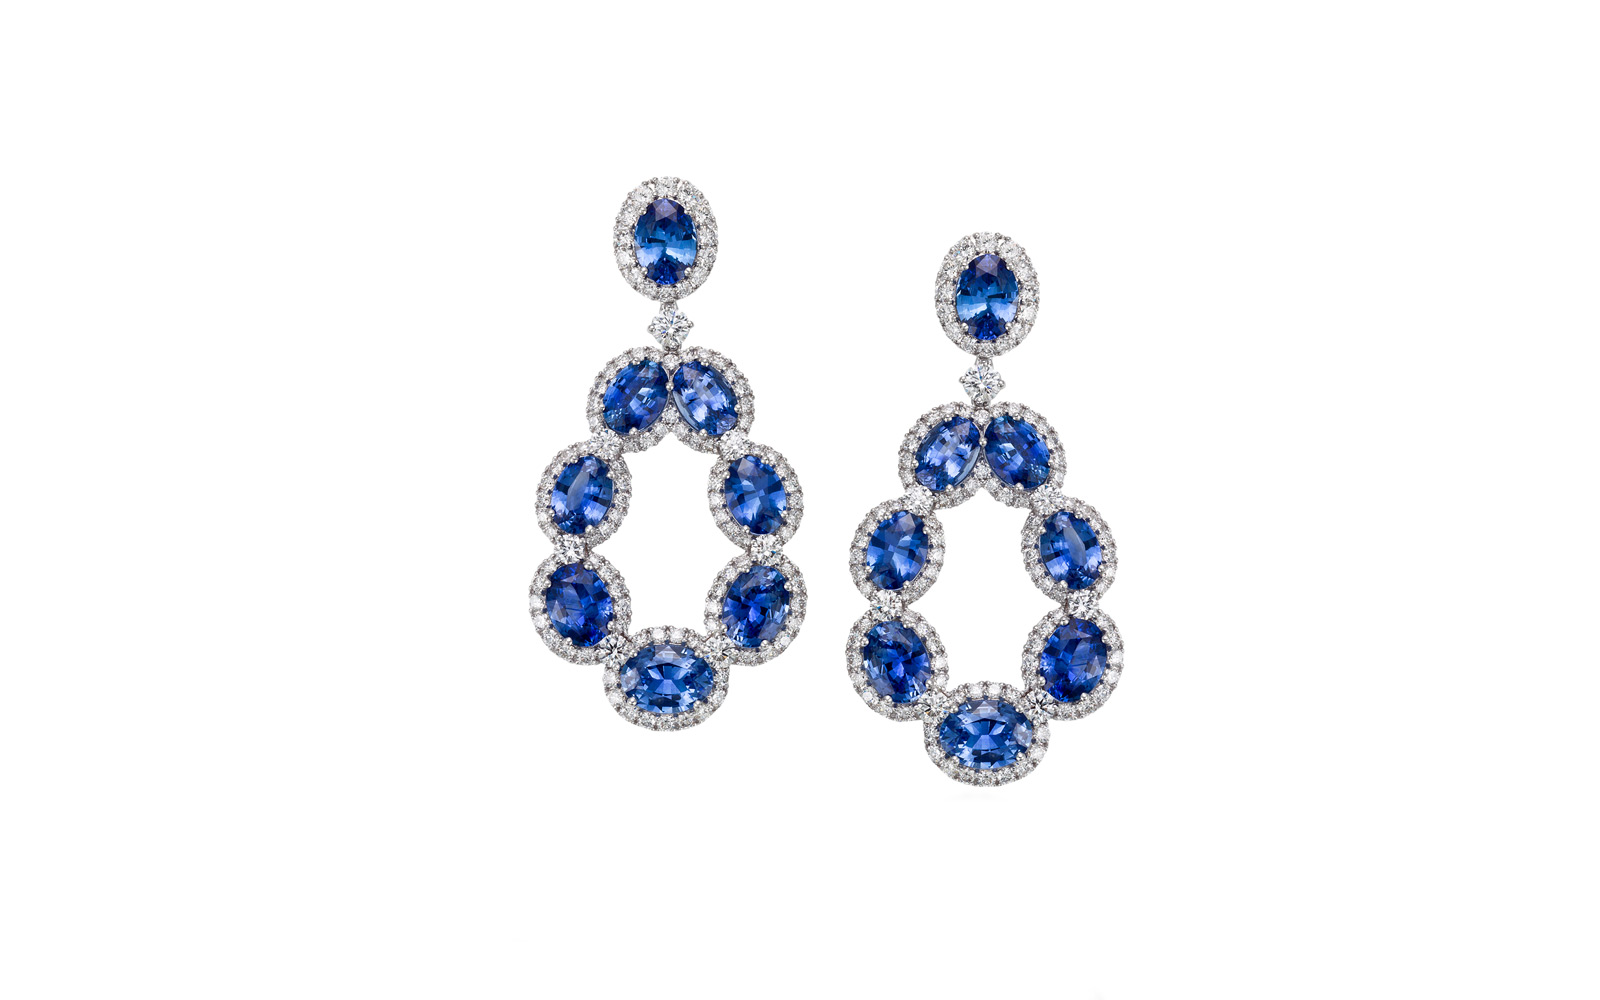 Picchiotti Shire And Diamond Wedding Day Earrings In Platinum From Bridal Collection